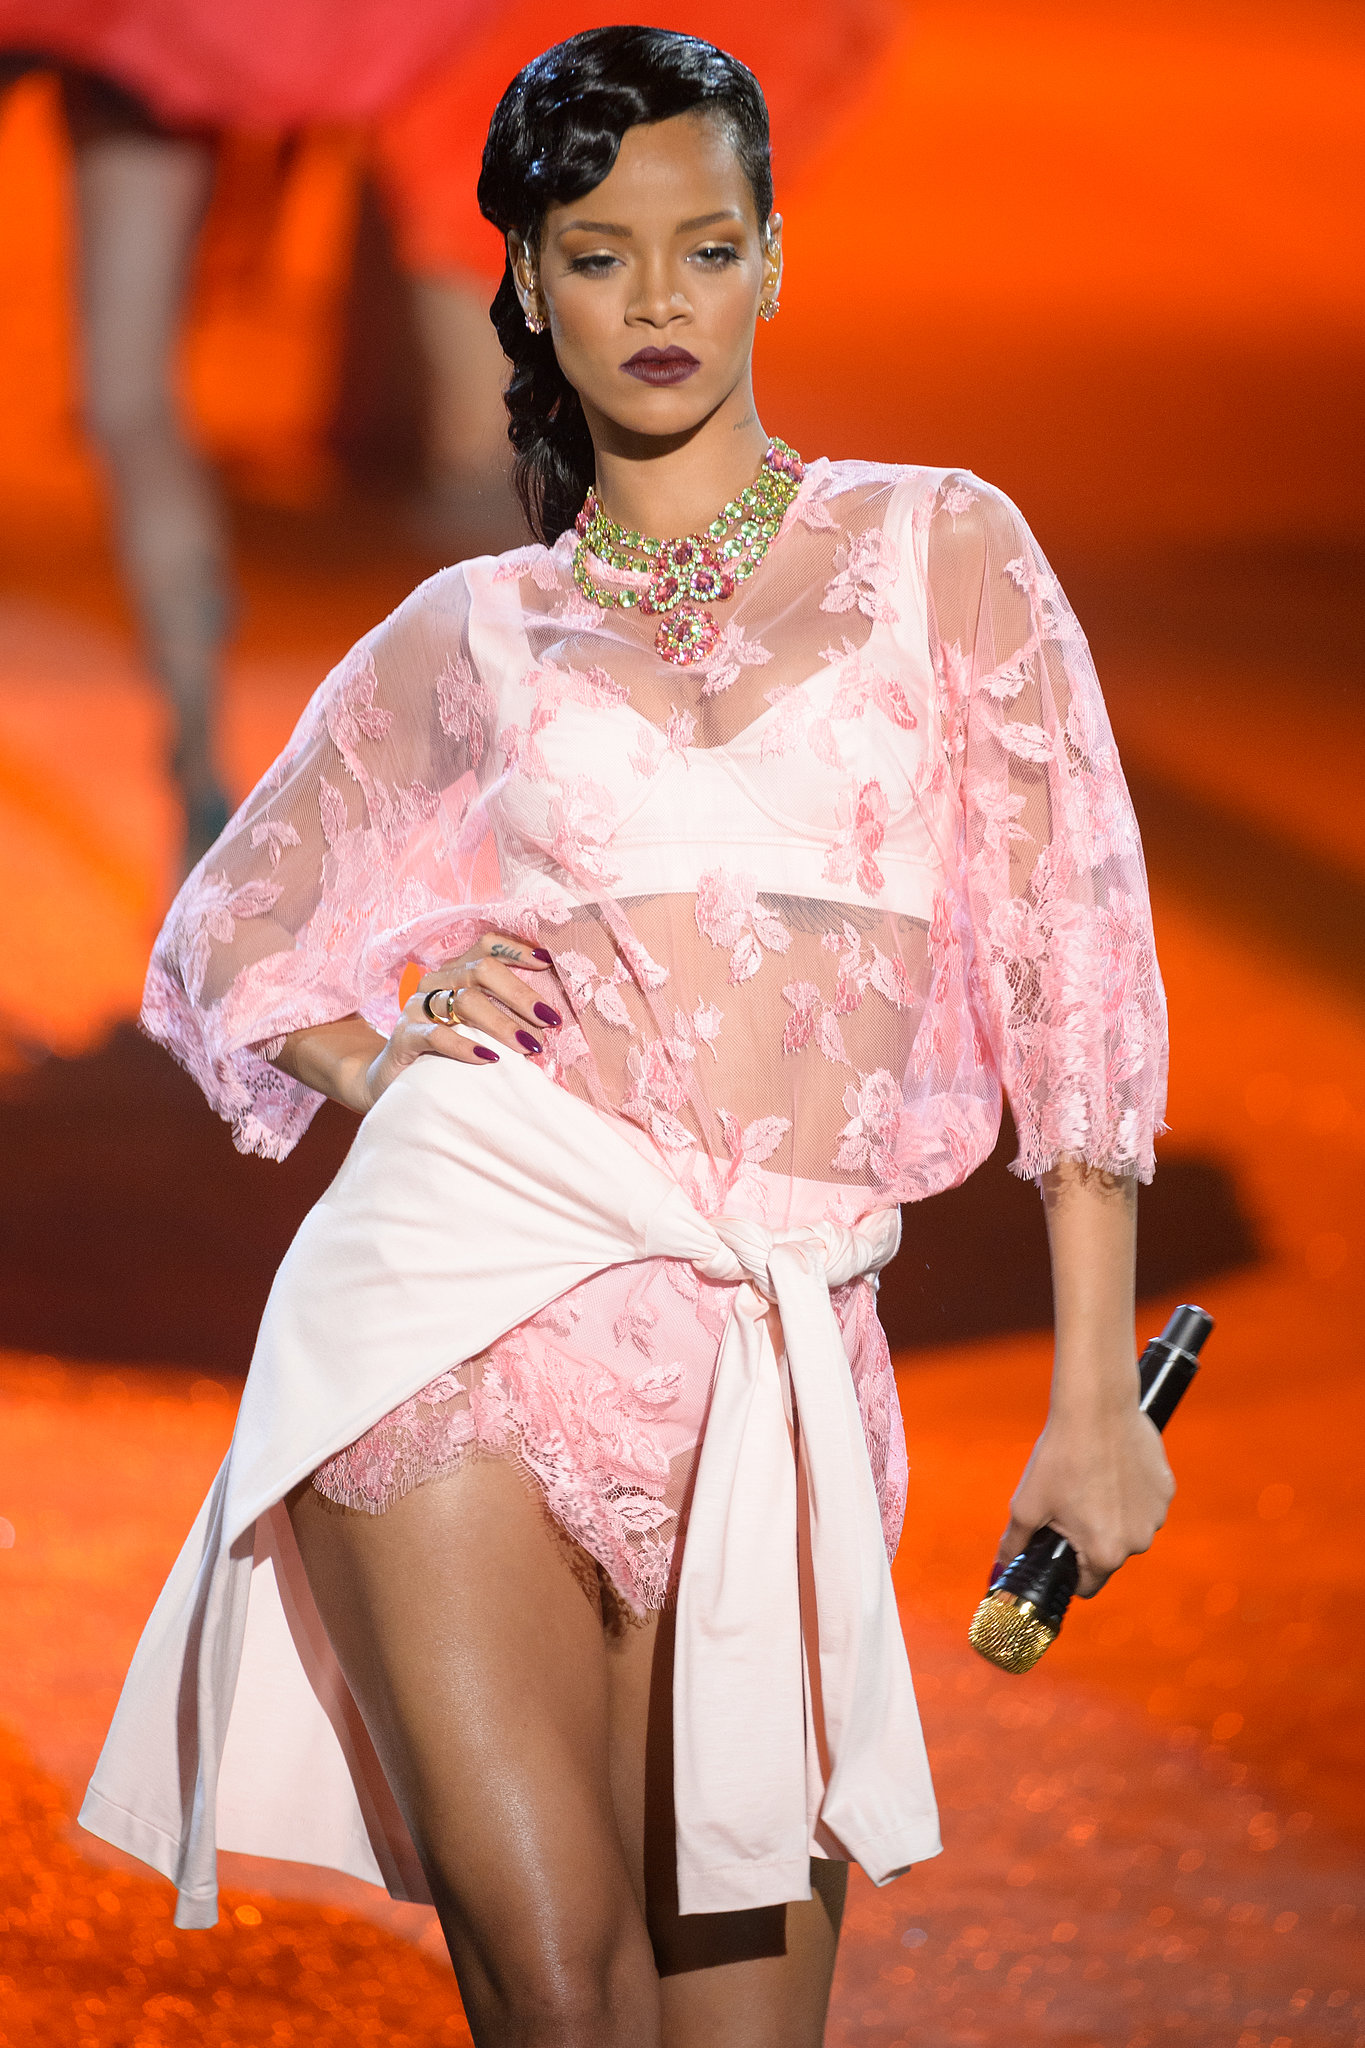 Rihanna took her turn on the catwalk while performing during the 2012 fashion show.